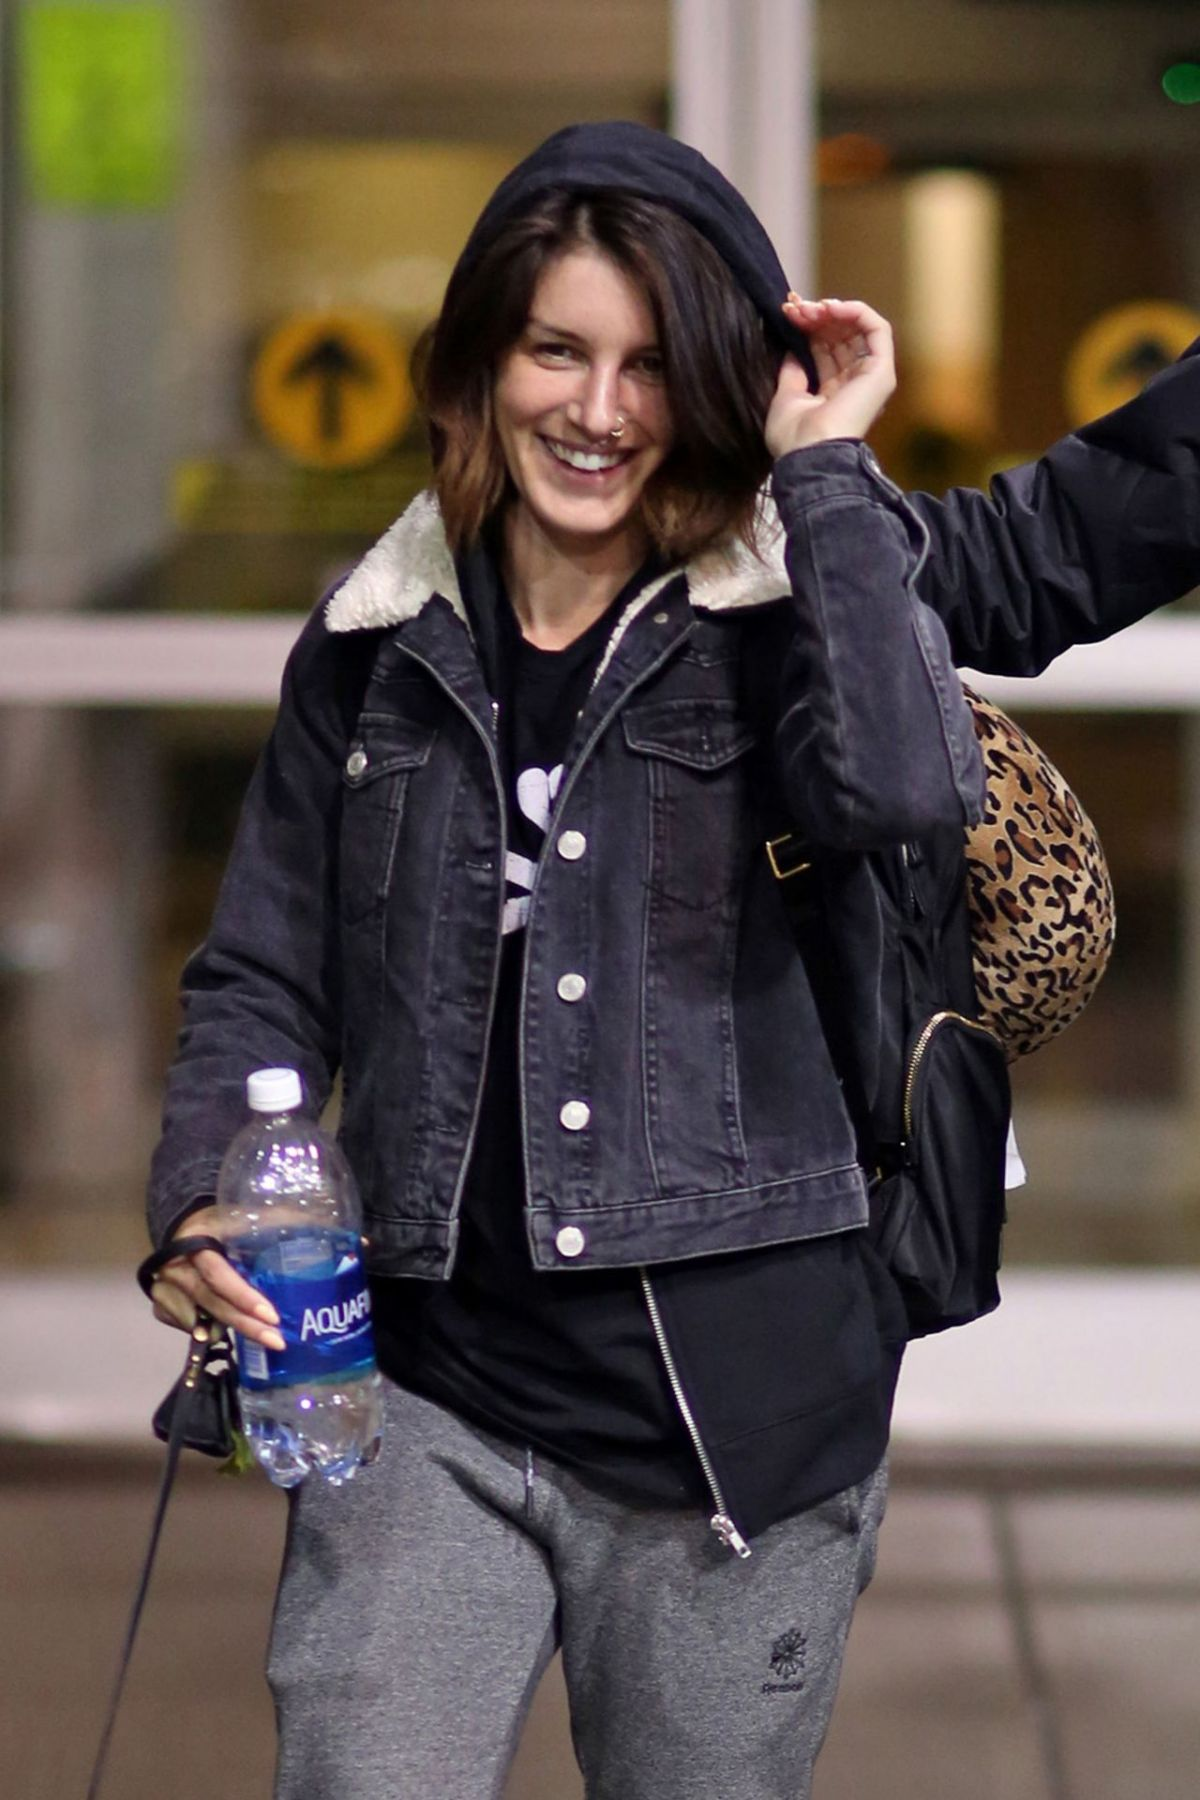 SHENAE GRIMES at Airport in Vancouver 03/27/2016